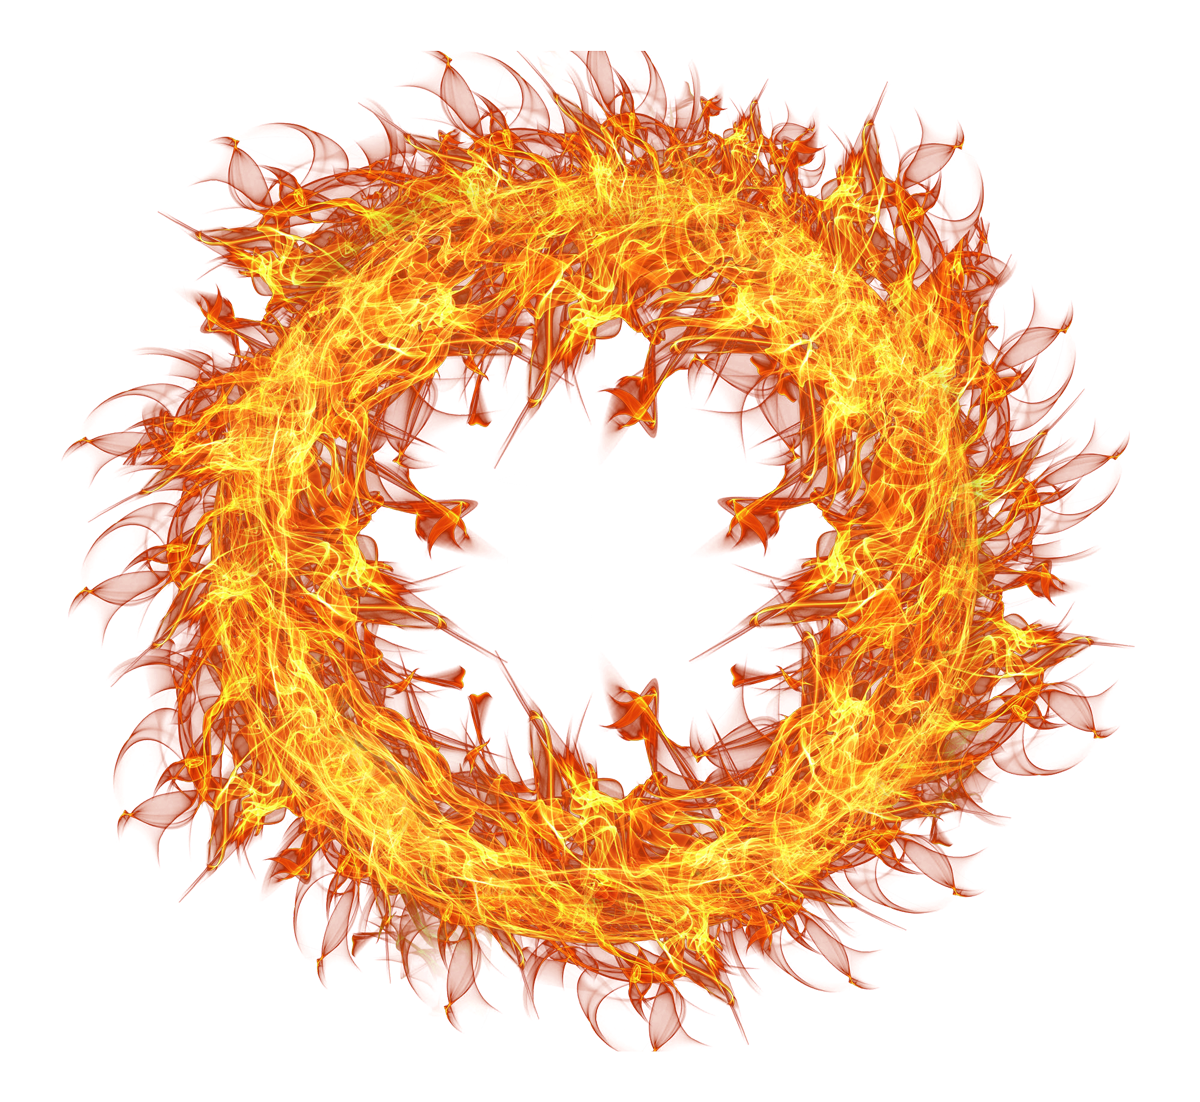 Fire Flame Circle Png By Hasso On Transparentpng 6797